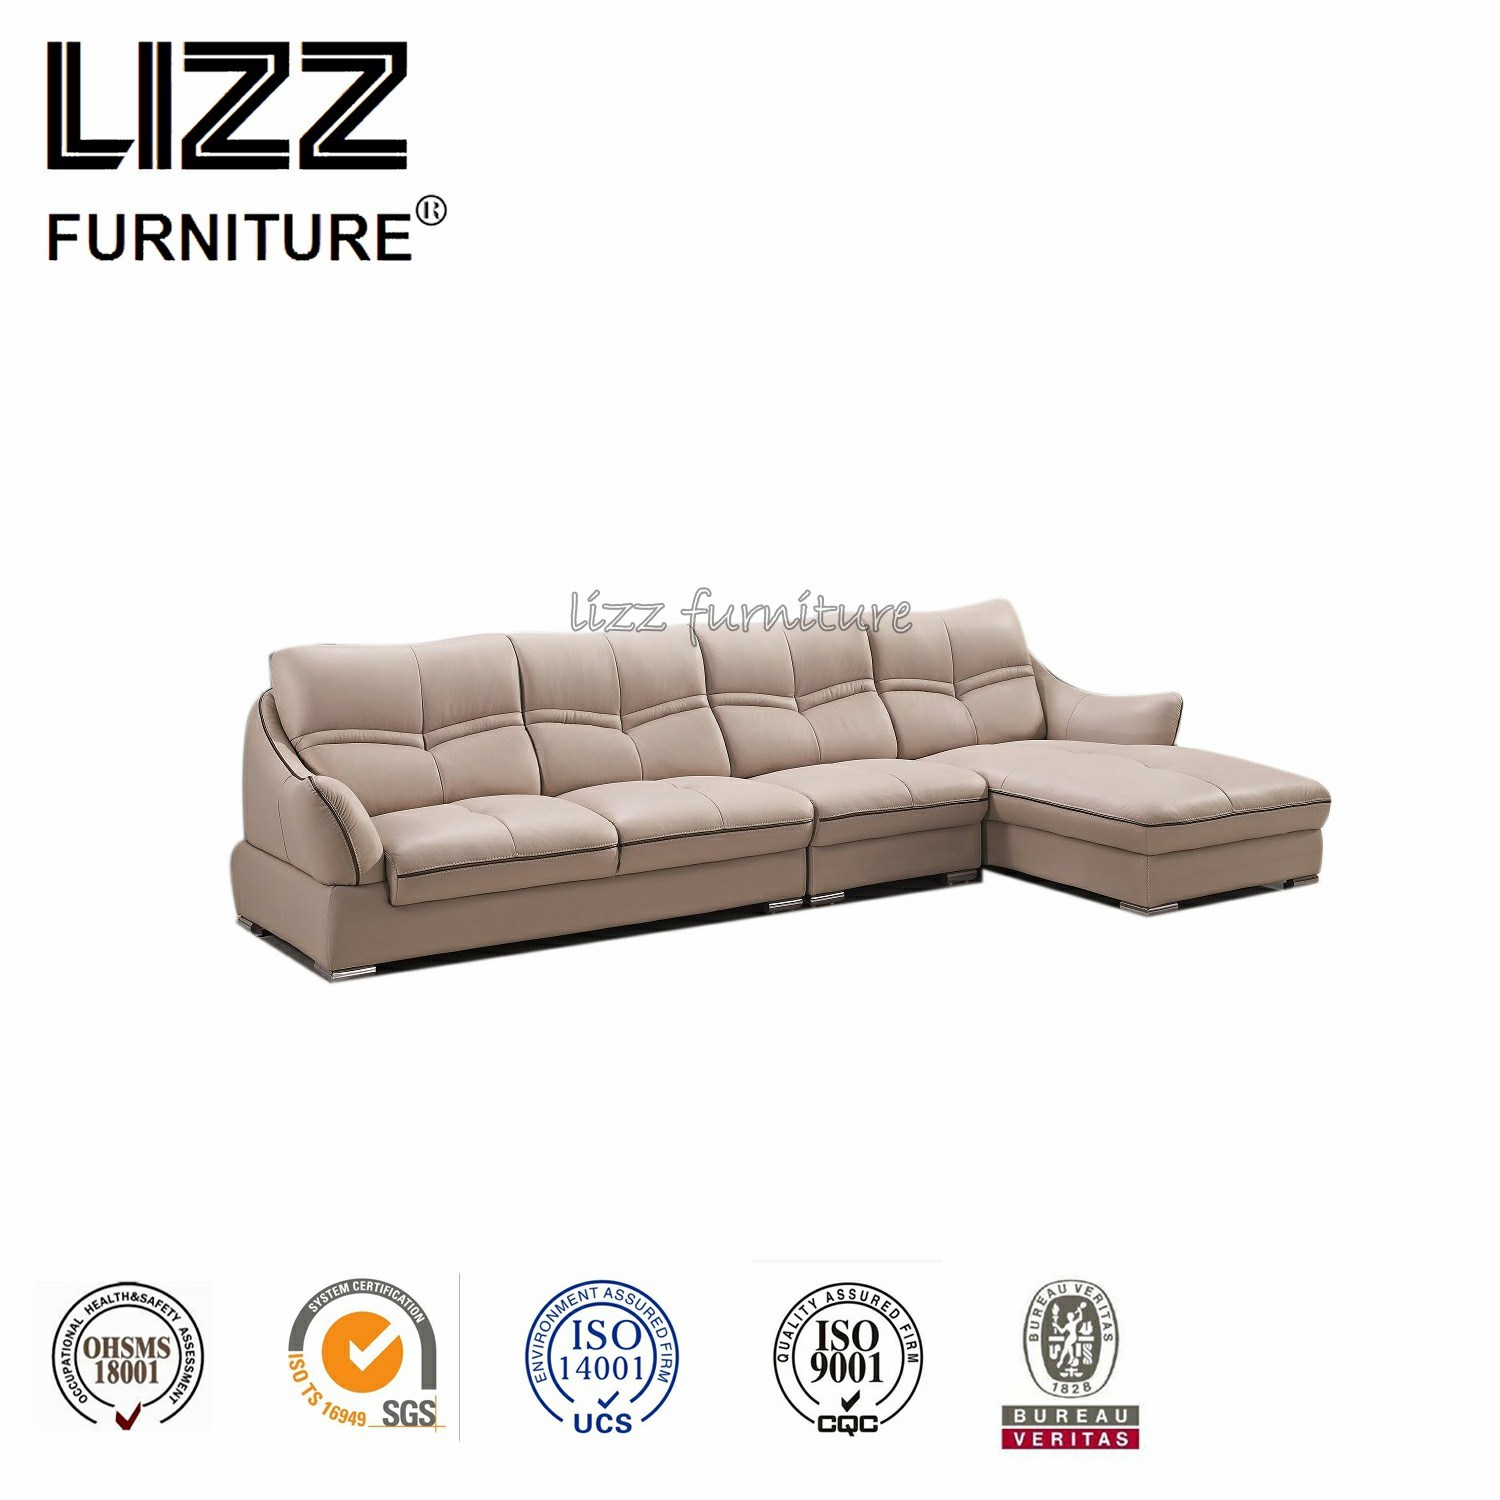 Awe Inspiring Hot Item Native Modern Heated Leather Sofa Skinn Sofa Style Unemploymentrelief Wooden Chair Designs For Living Room Unemploymentrelieforg